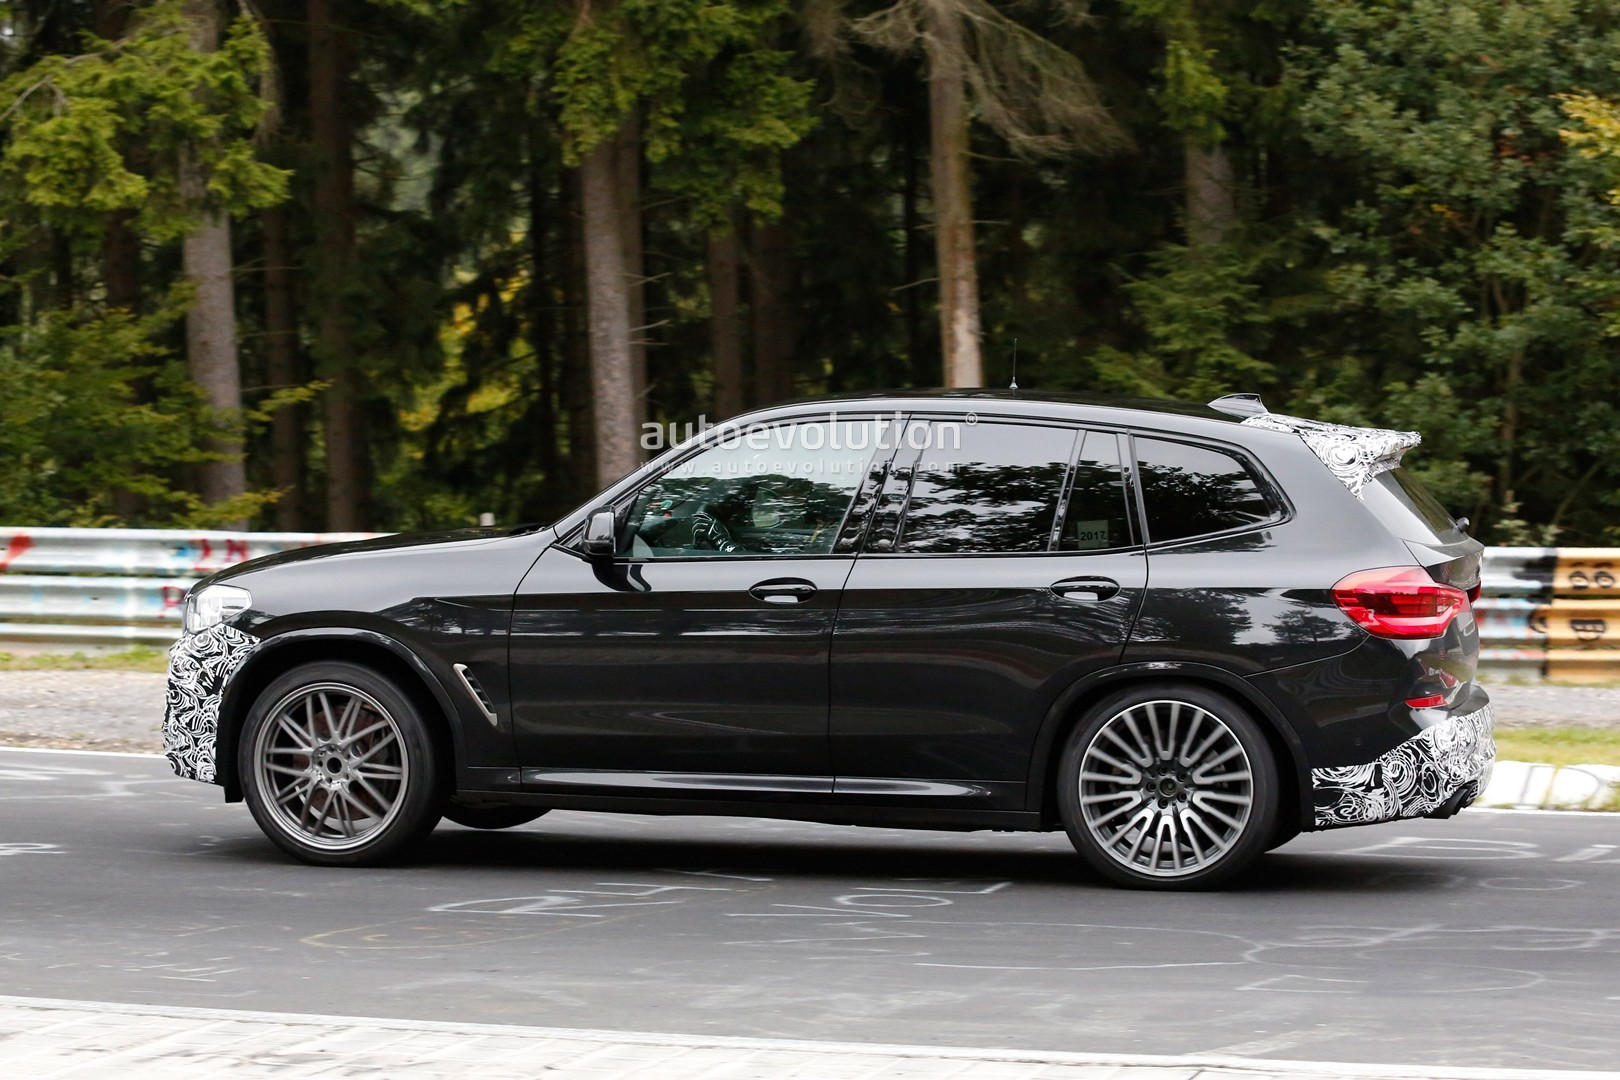 2019 Bmw X3 M >> F97 BMW X3 M Cocks a Wheel on Nurburgring, Wears Minimal Camo - autoevolution